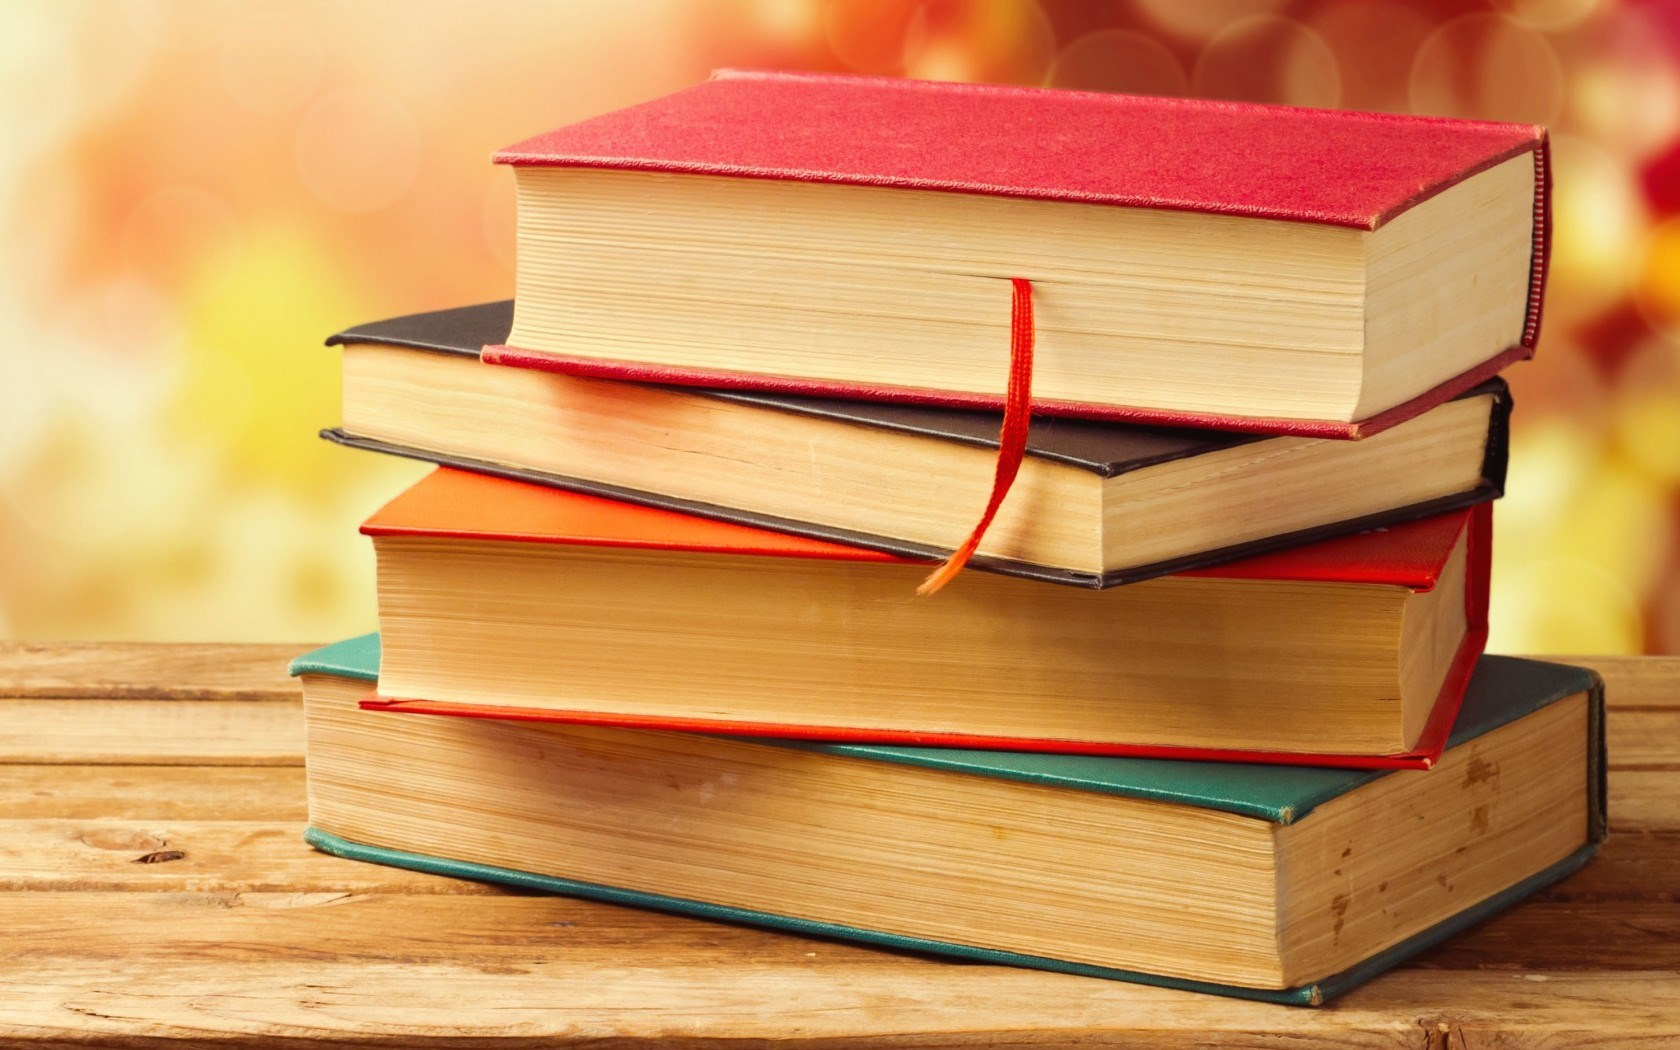 books_bokeh_hd_wallpaper-wide